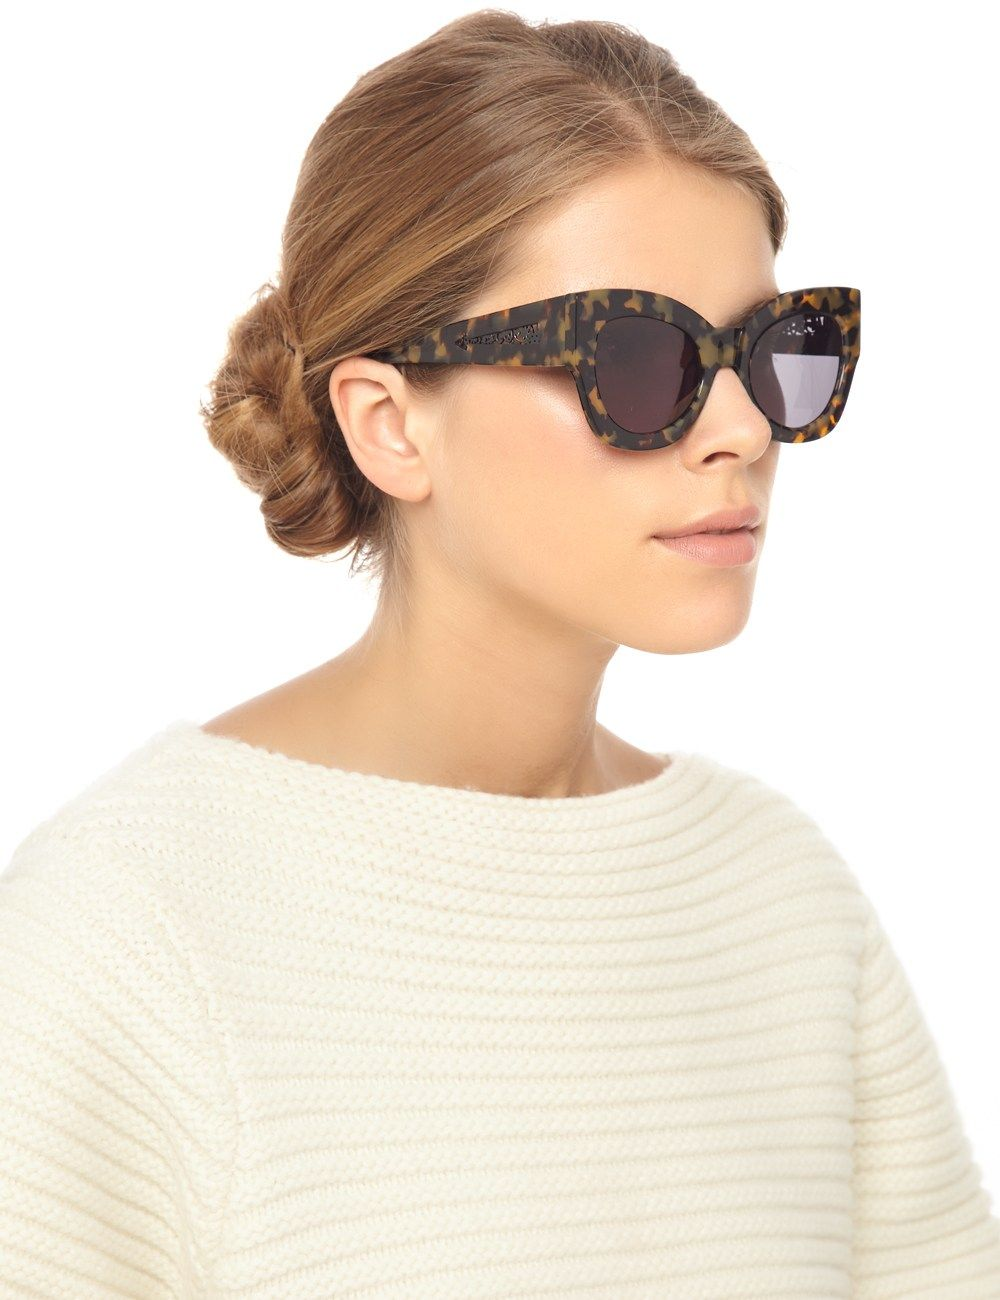 98afdb6808e2 Tortoise Northern Lights Sunglasses by Karen Walker $260 | Shades ...